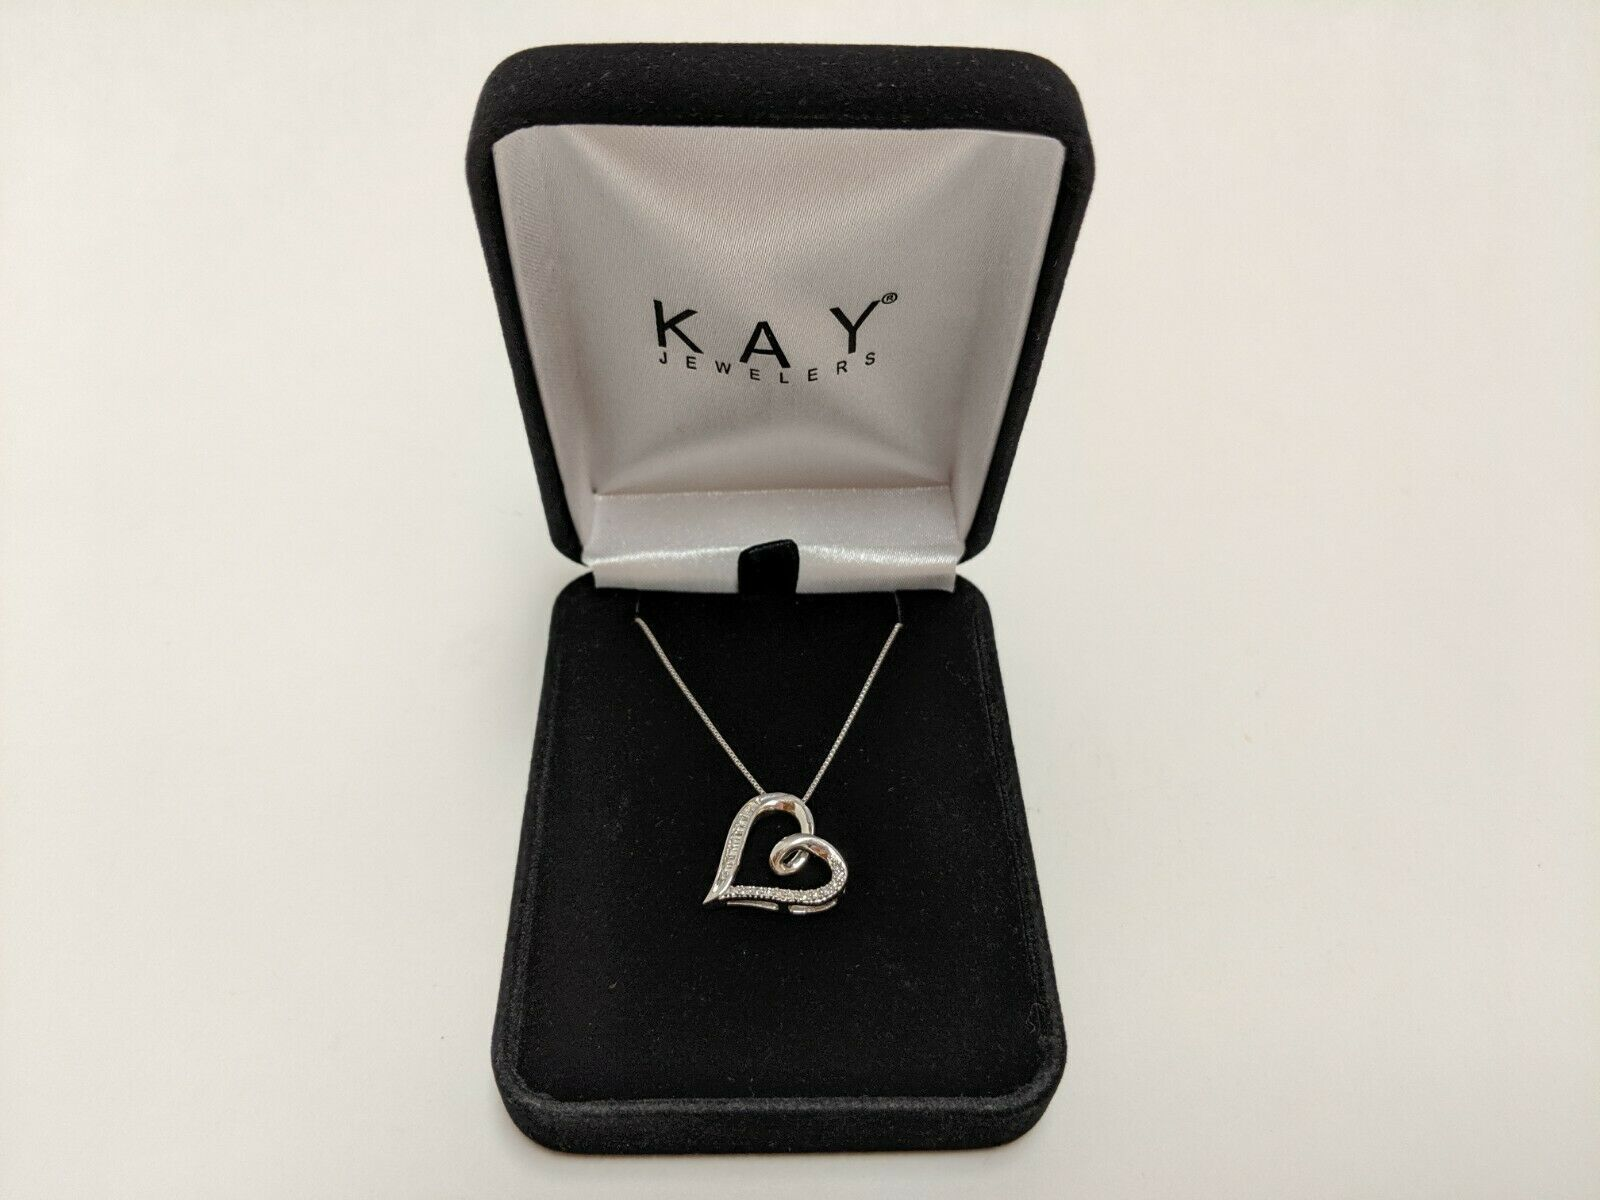 Pin By Bone Jack Vintage On Ebay Shares Heart Necklace Diamond Necklace Kay Jewelers Necklaces